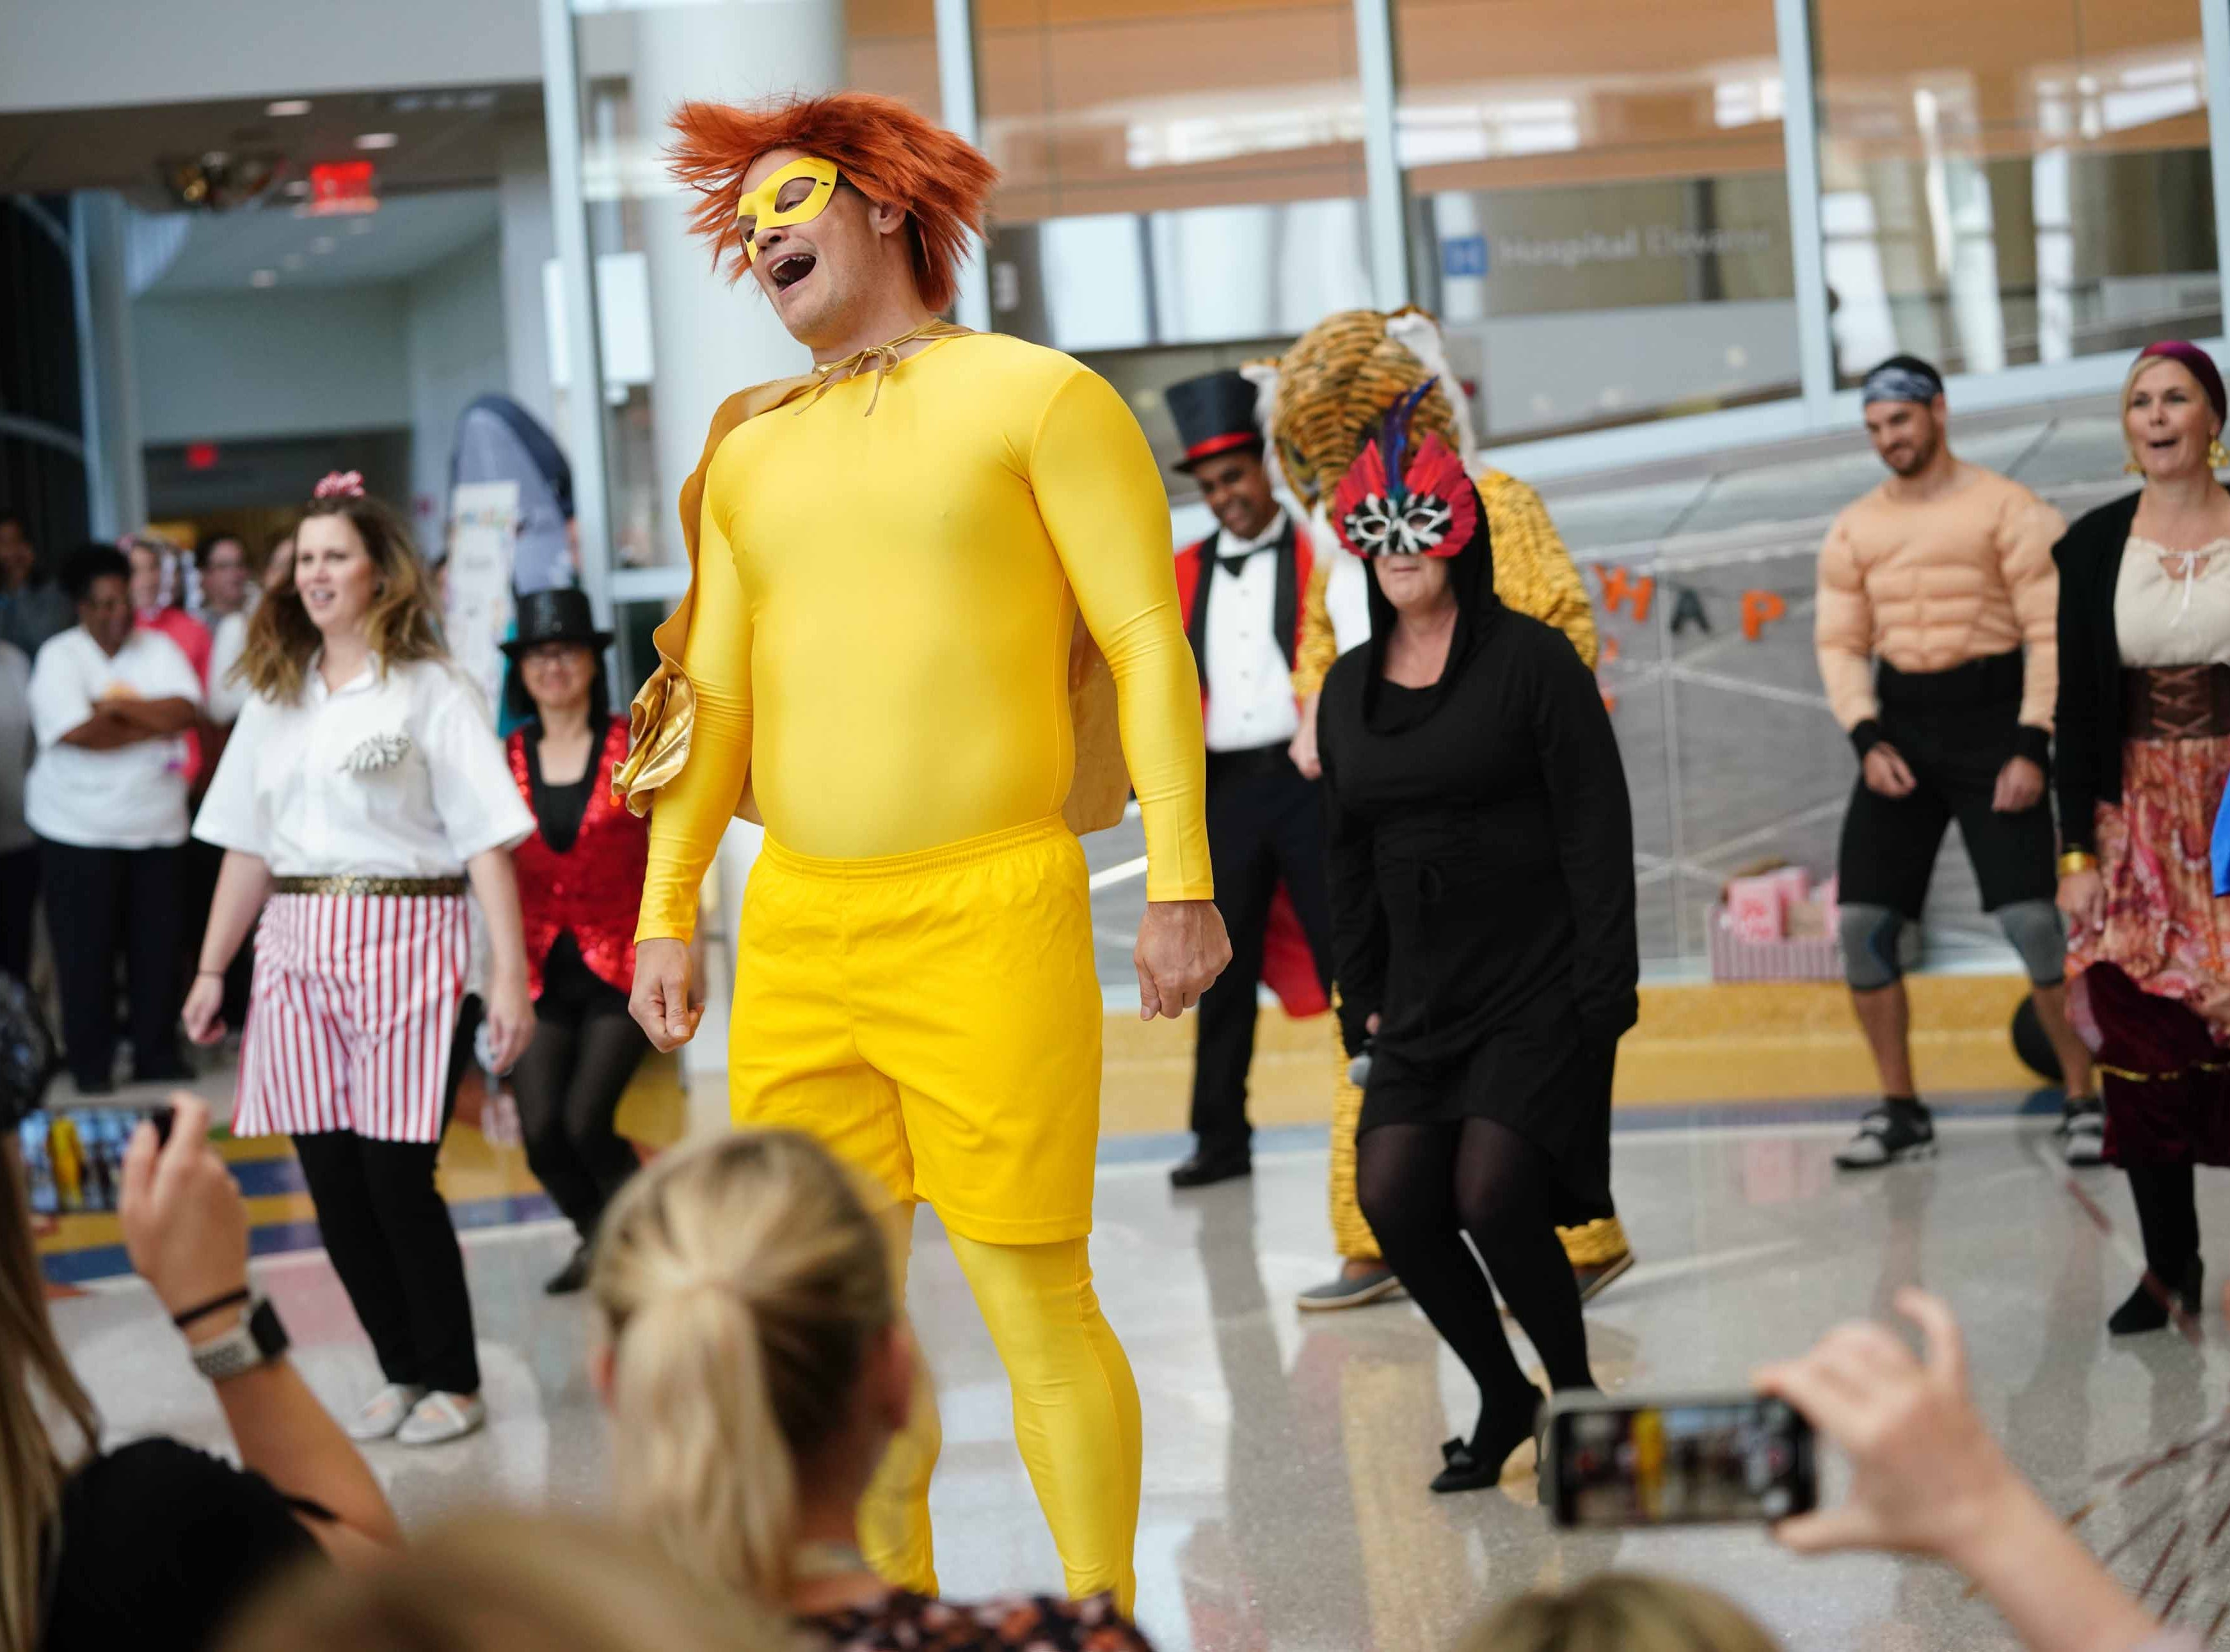 Staff from various departments at Nemours/A.I. duPont Hospital for Children dressed in costume to entertain patients and family at the annual Halloween Lip Sync contest in the hospital's atrium on Halloween. Select patients got to judge the performances for a winner.